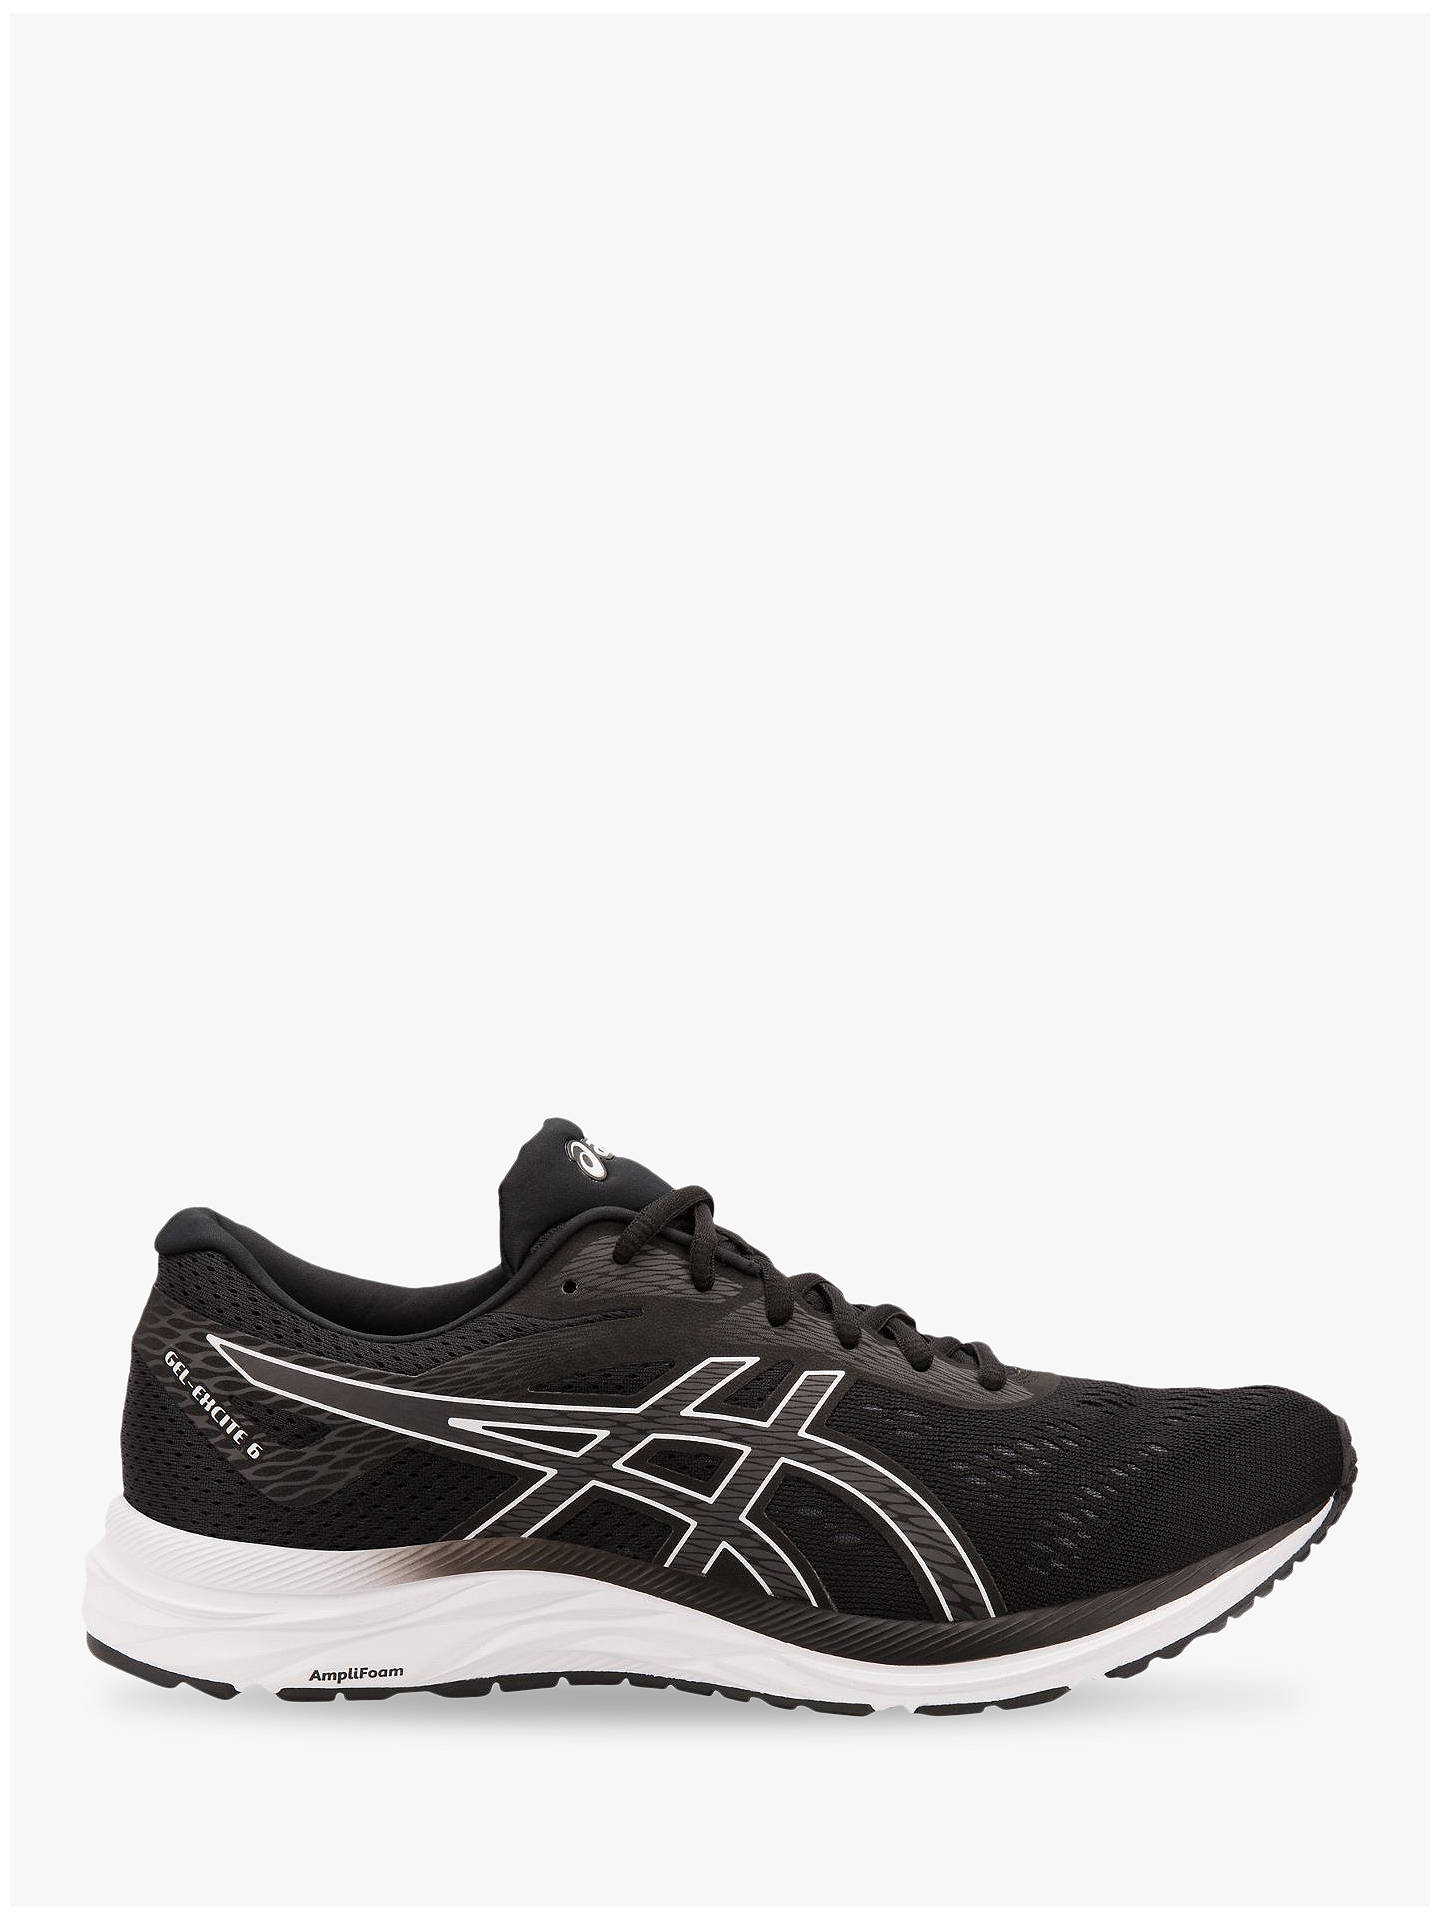 2316f0ccc ASICS GEL-EXCITE 6 Men s Running Shoes at John Lewis   Partners